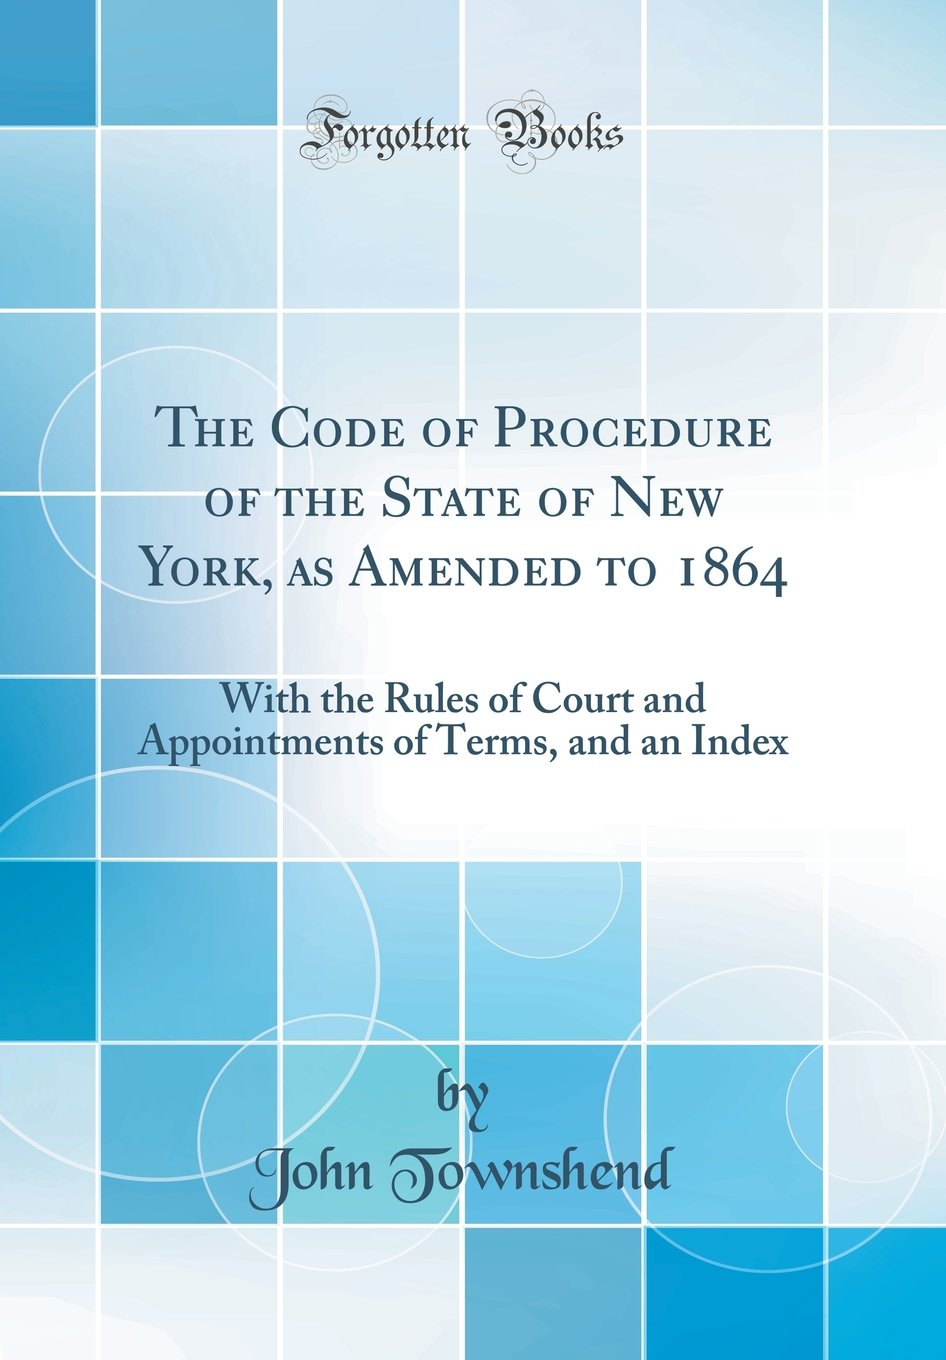 The Code of Procedure of the State of New York, as Amended to 1864: With the Rules of Court and Appointments of Terms, and an Index (Classic Reprint) pdf